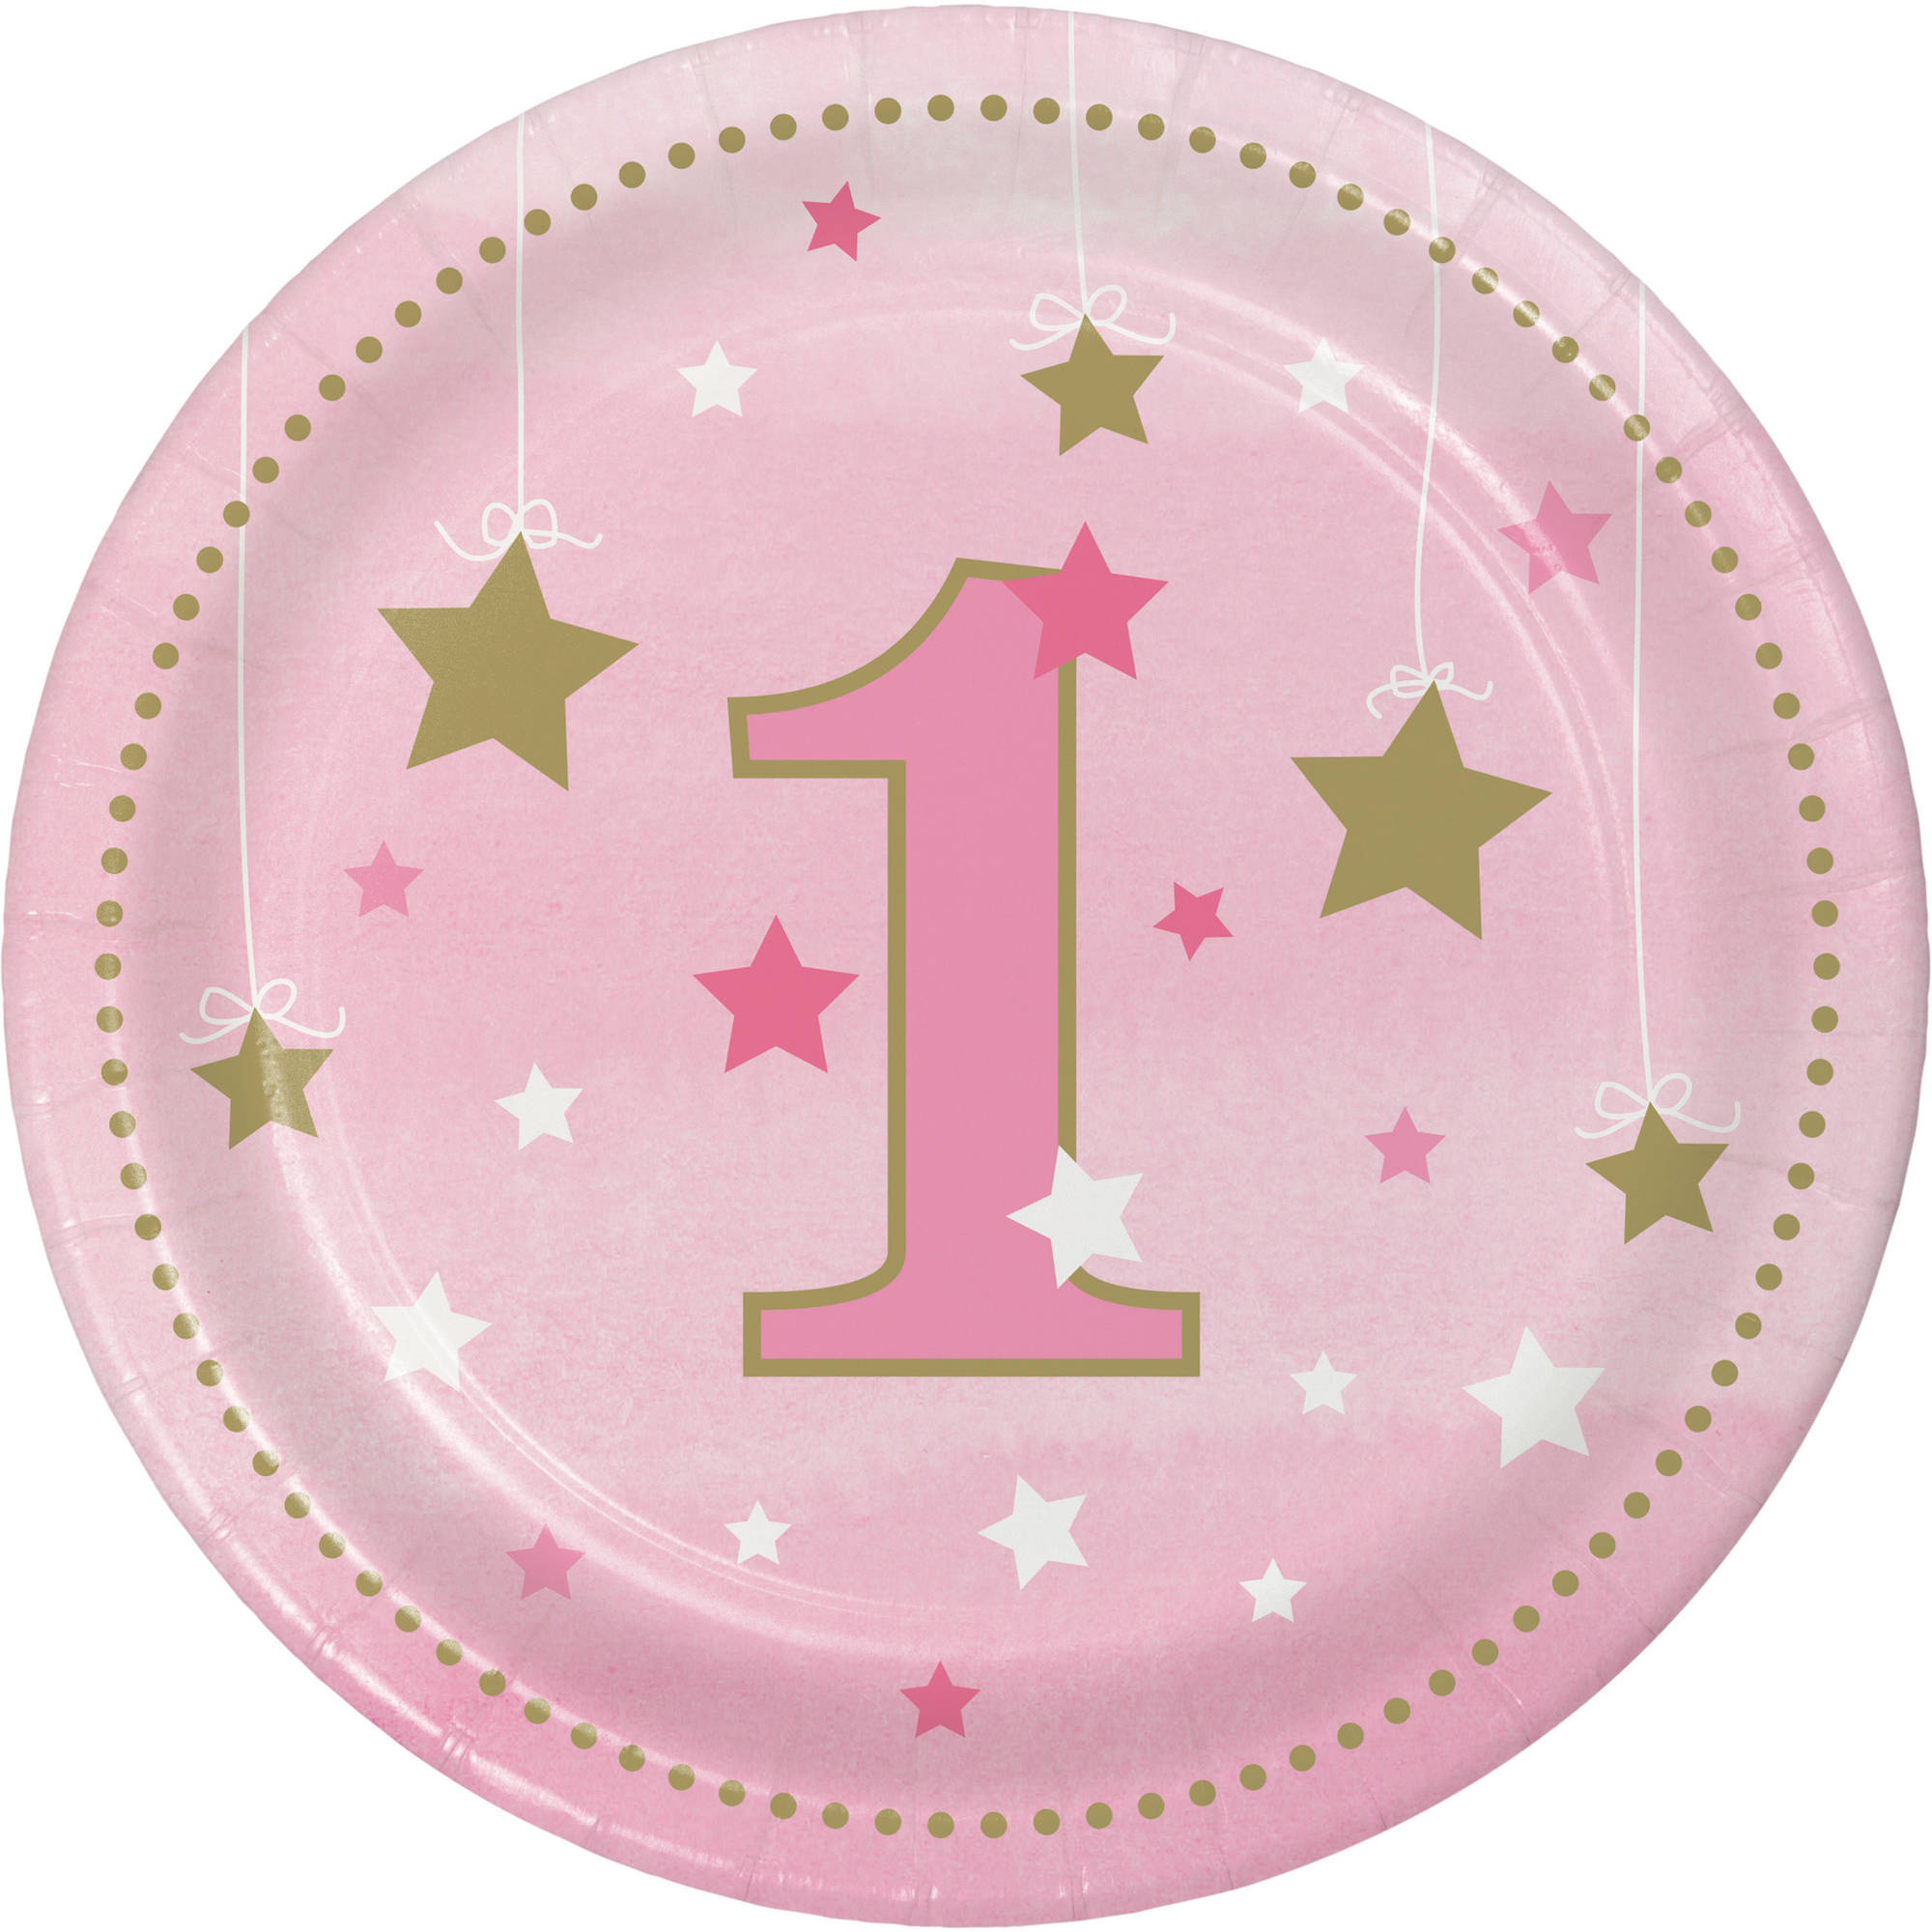 Little Star Girl 1st Birthday Dessert Plates, 8-Pack